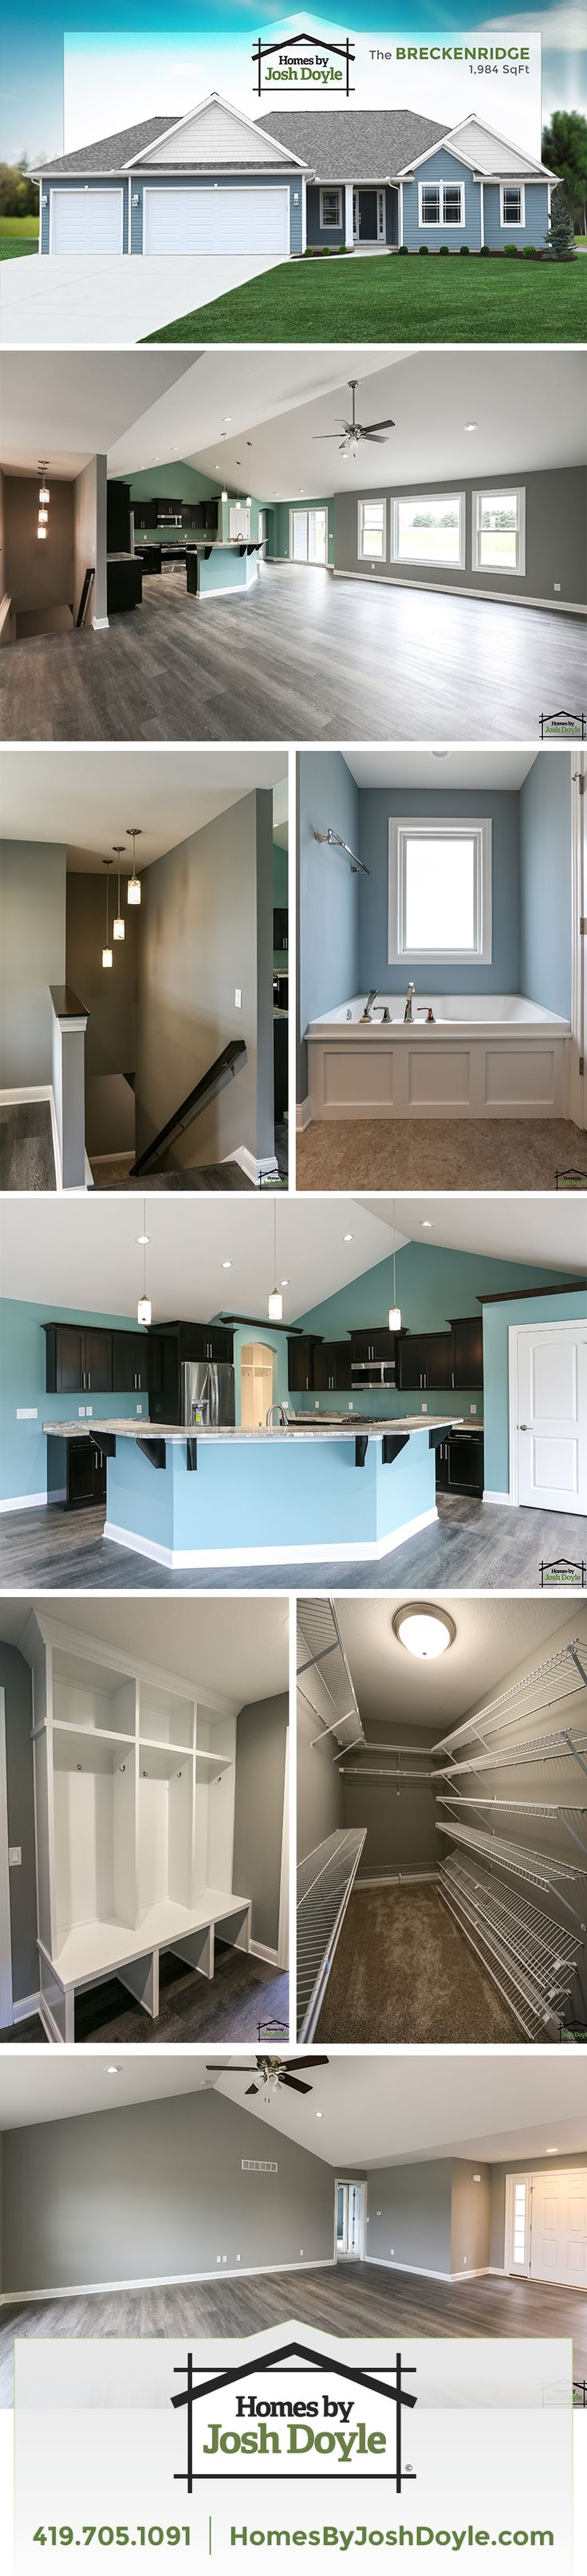 19 best hbjd ranch homes images on pinterest bungalow homes